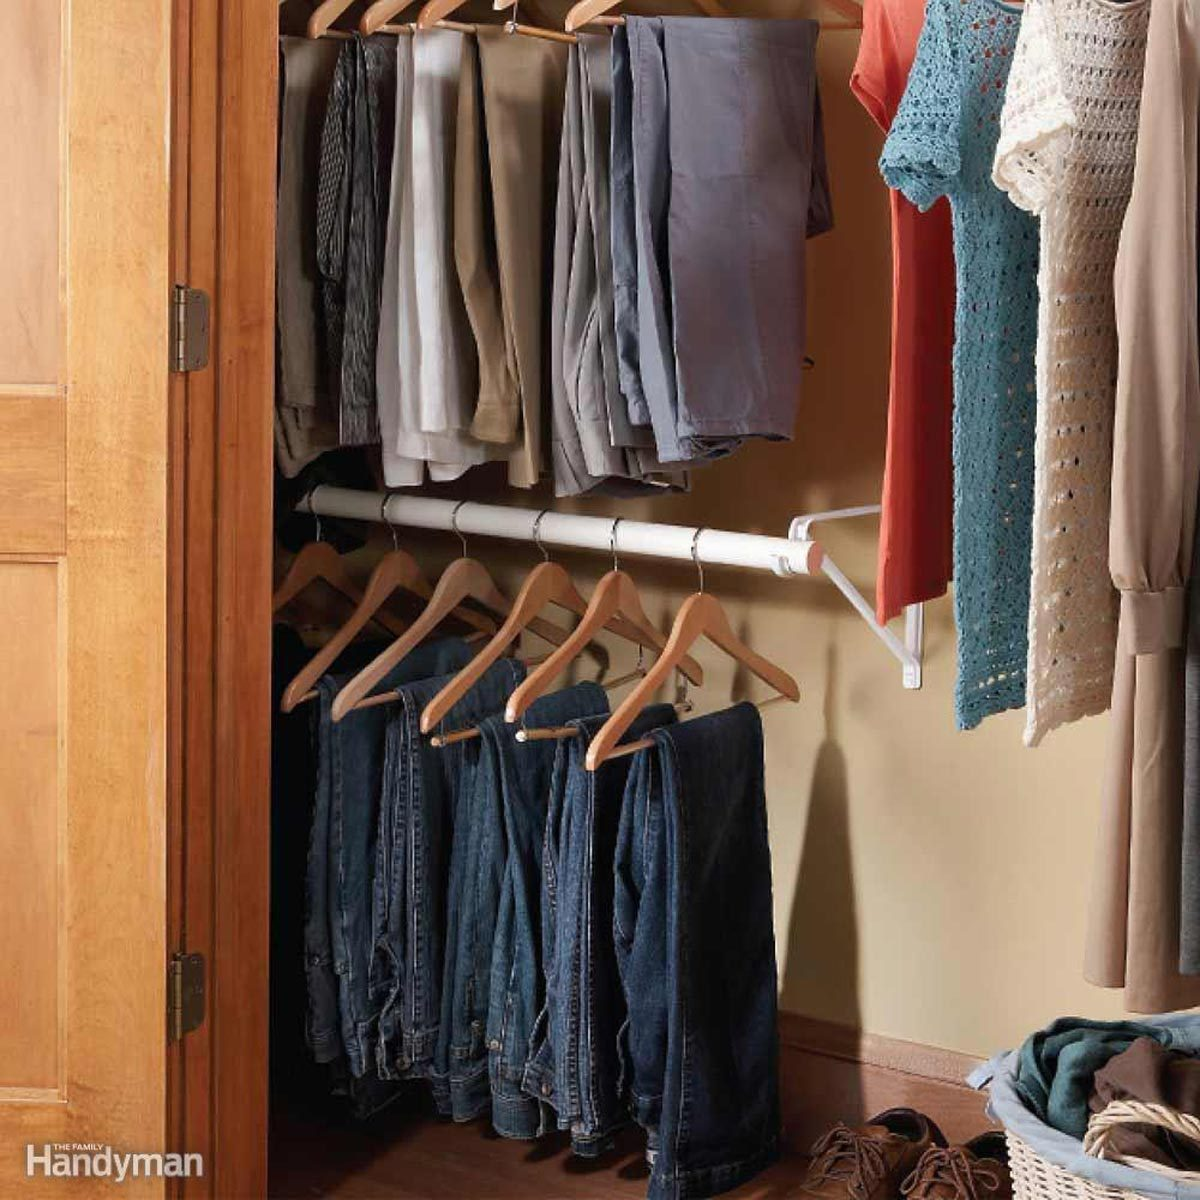 Best Way to Store Clothes: Folding Versus Hanging